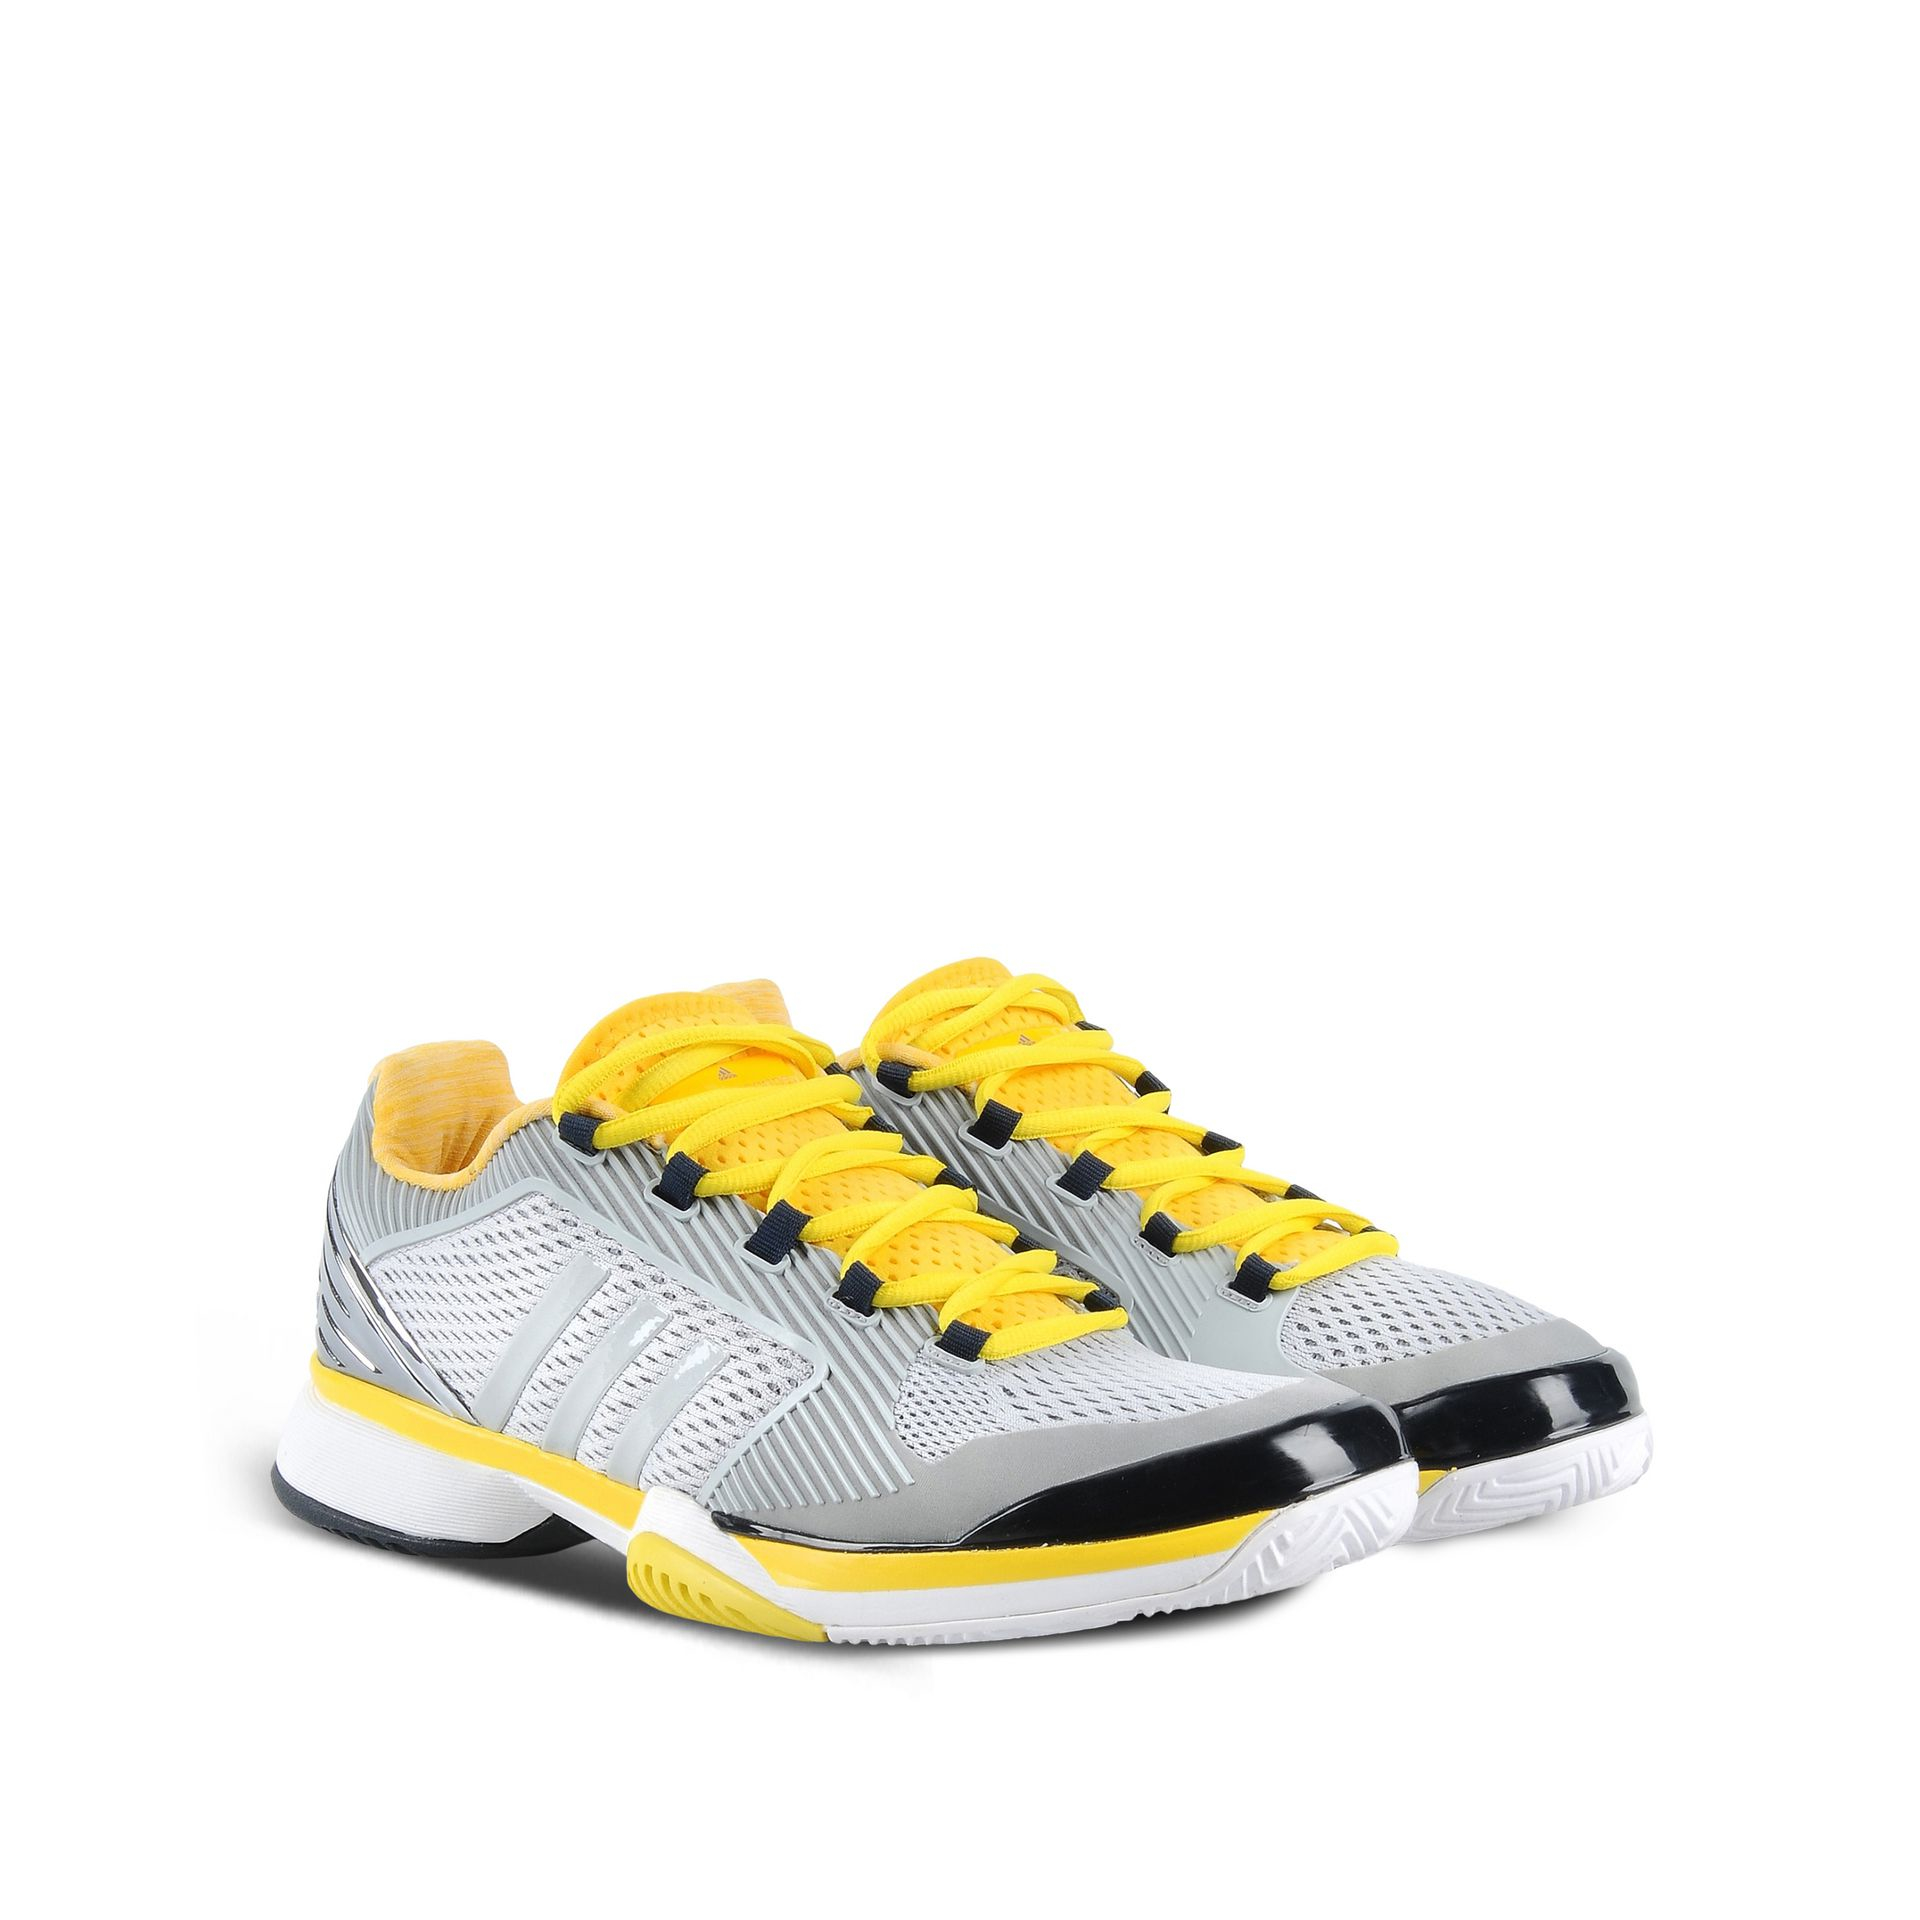 new product b4060 9a350 Lyst - Adidas By Stella Mccartney Barricade Tennis Shoes in